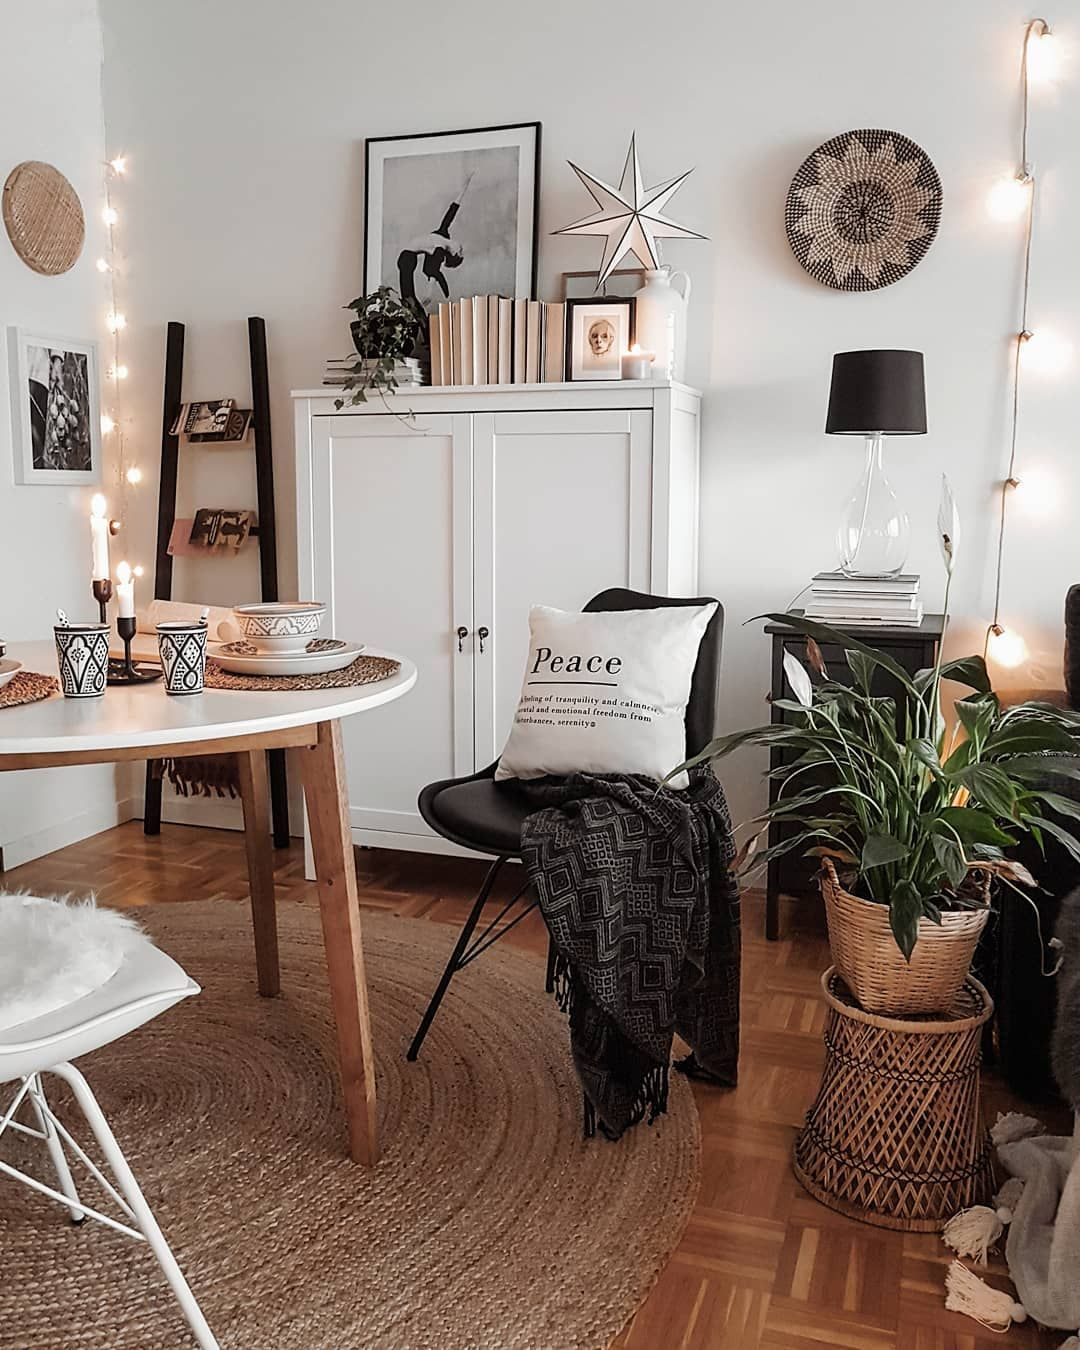 Monochrome Bohemian Scandi On Instagram Happy Tuesday Guys Just Relaxing After A Busy Day Have A Lovely Evening Home Home Decor Relaxation Room